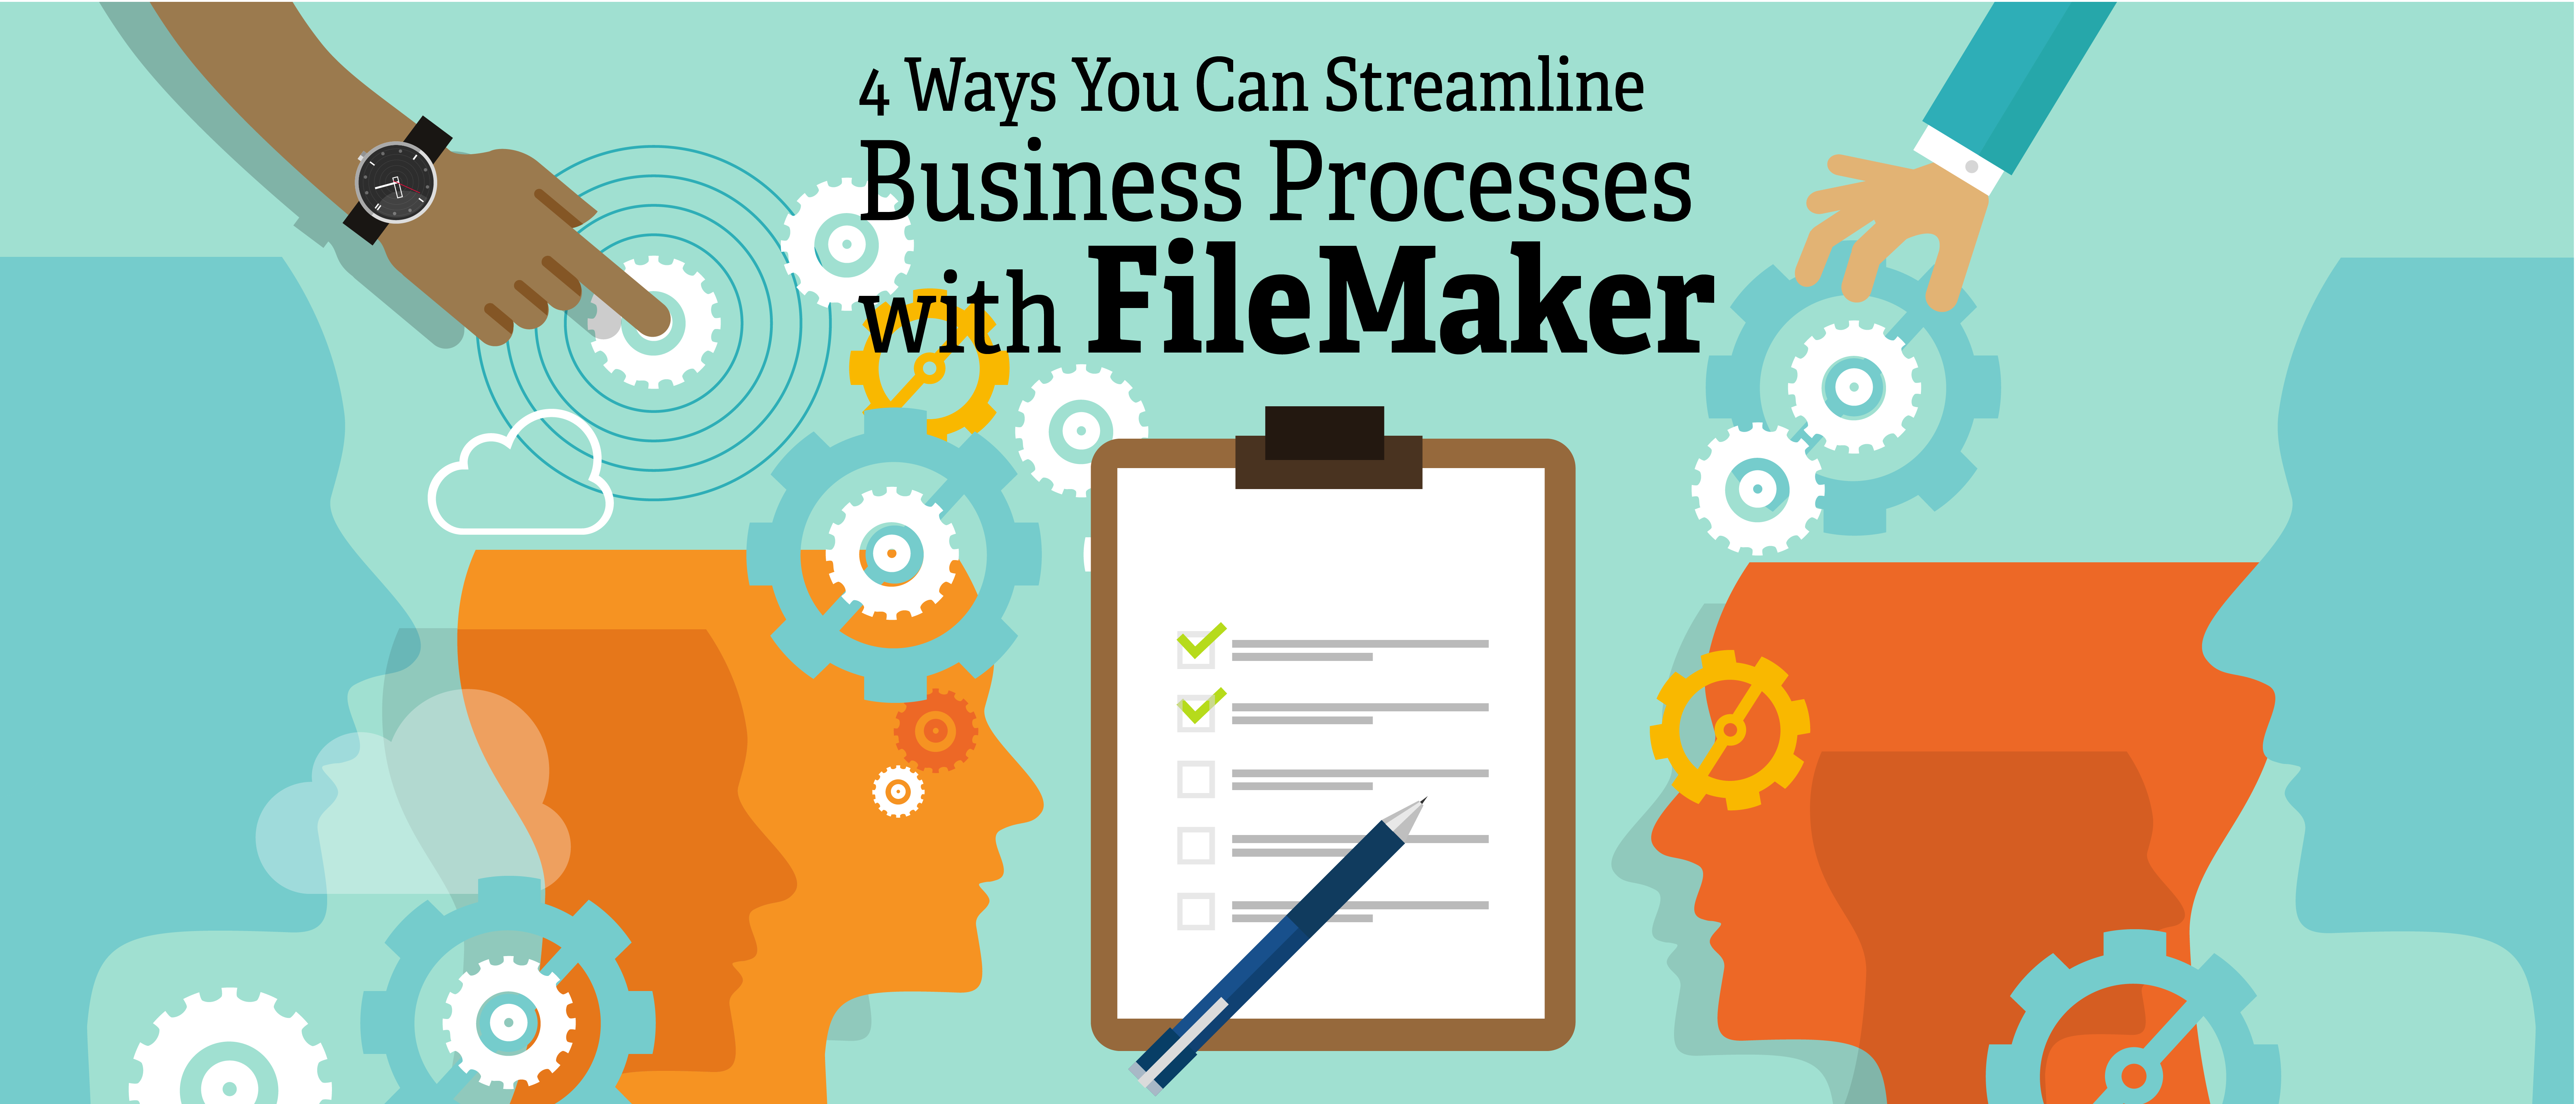 4 Ways You Can Streamline Business Processes with FileMaker - The